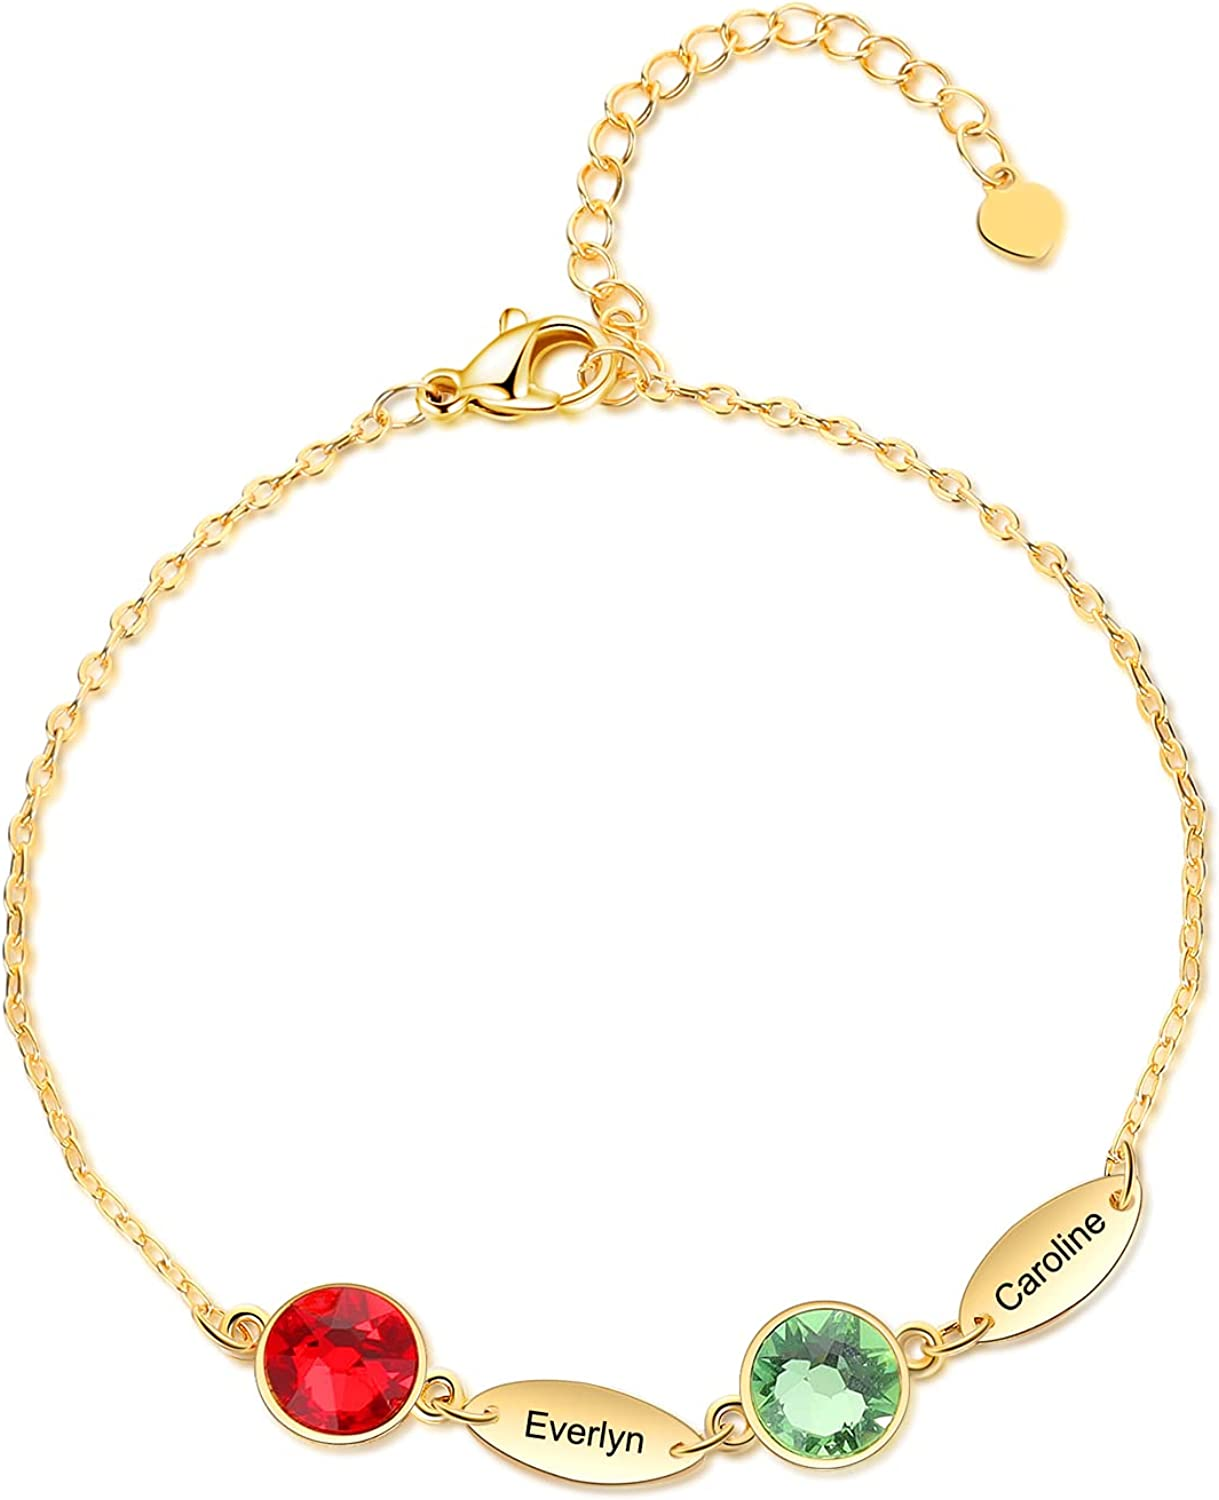 Personalized Name Link Bracelet for Women Engraved1-6 Names Gold Bracelets with Simulated Birthstones Family Bracelets for Mother Daughter